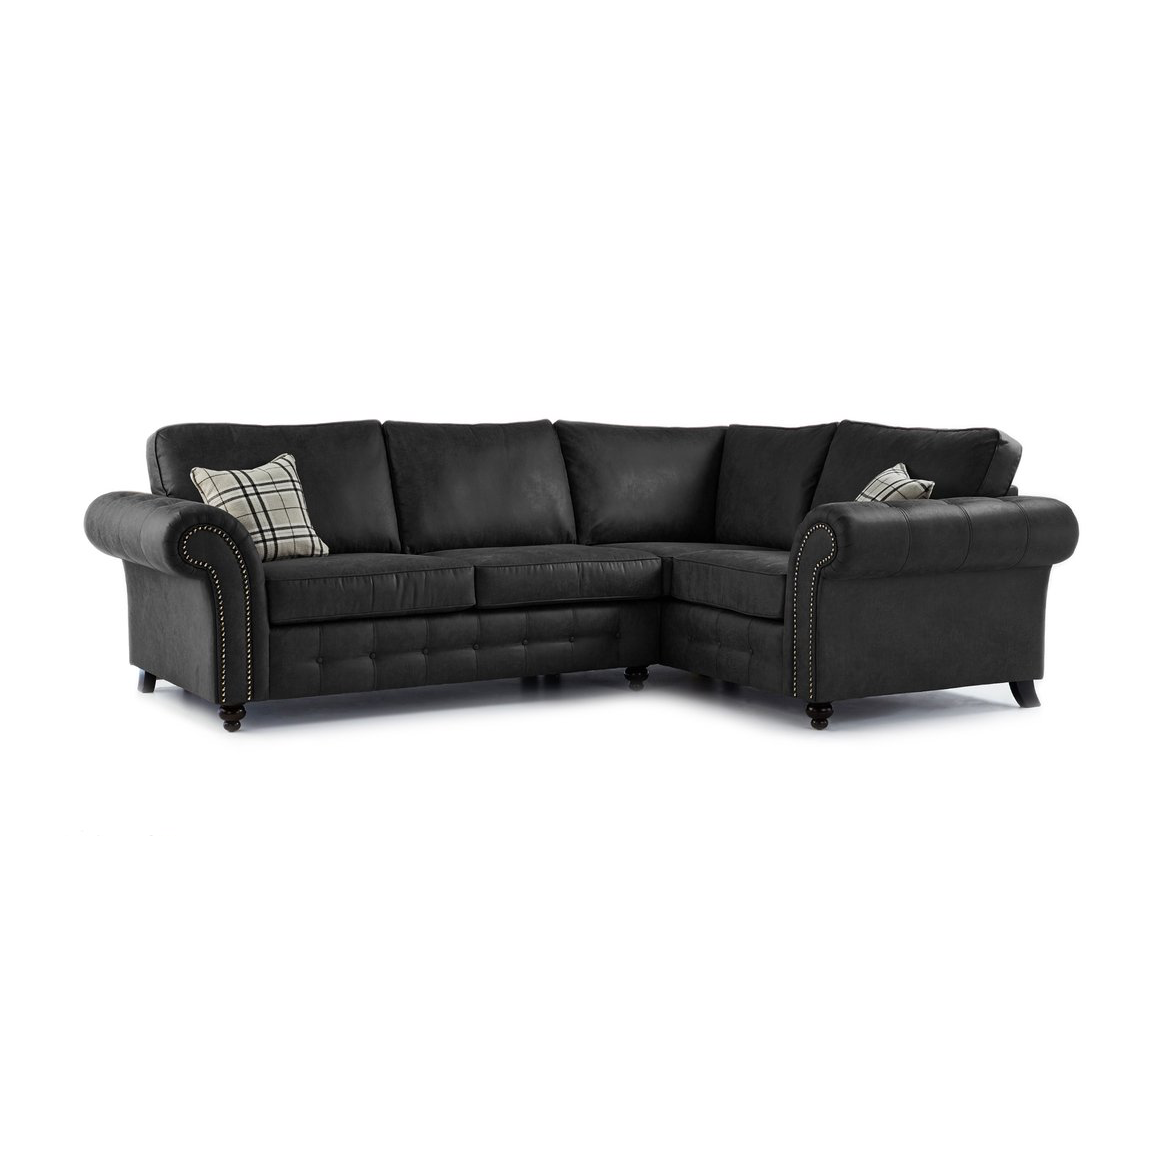 Oakland faux leather right hand corner sofa in black for Black corner sofa